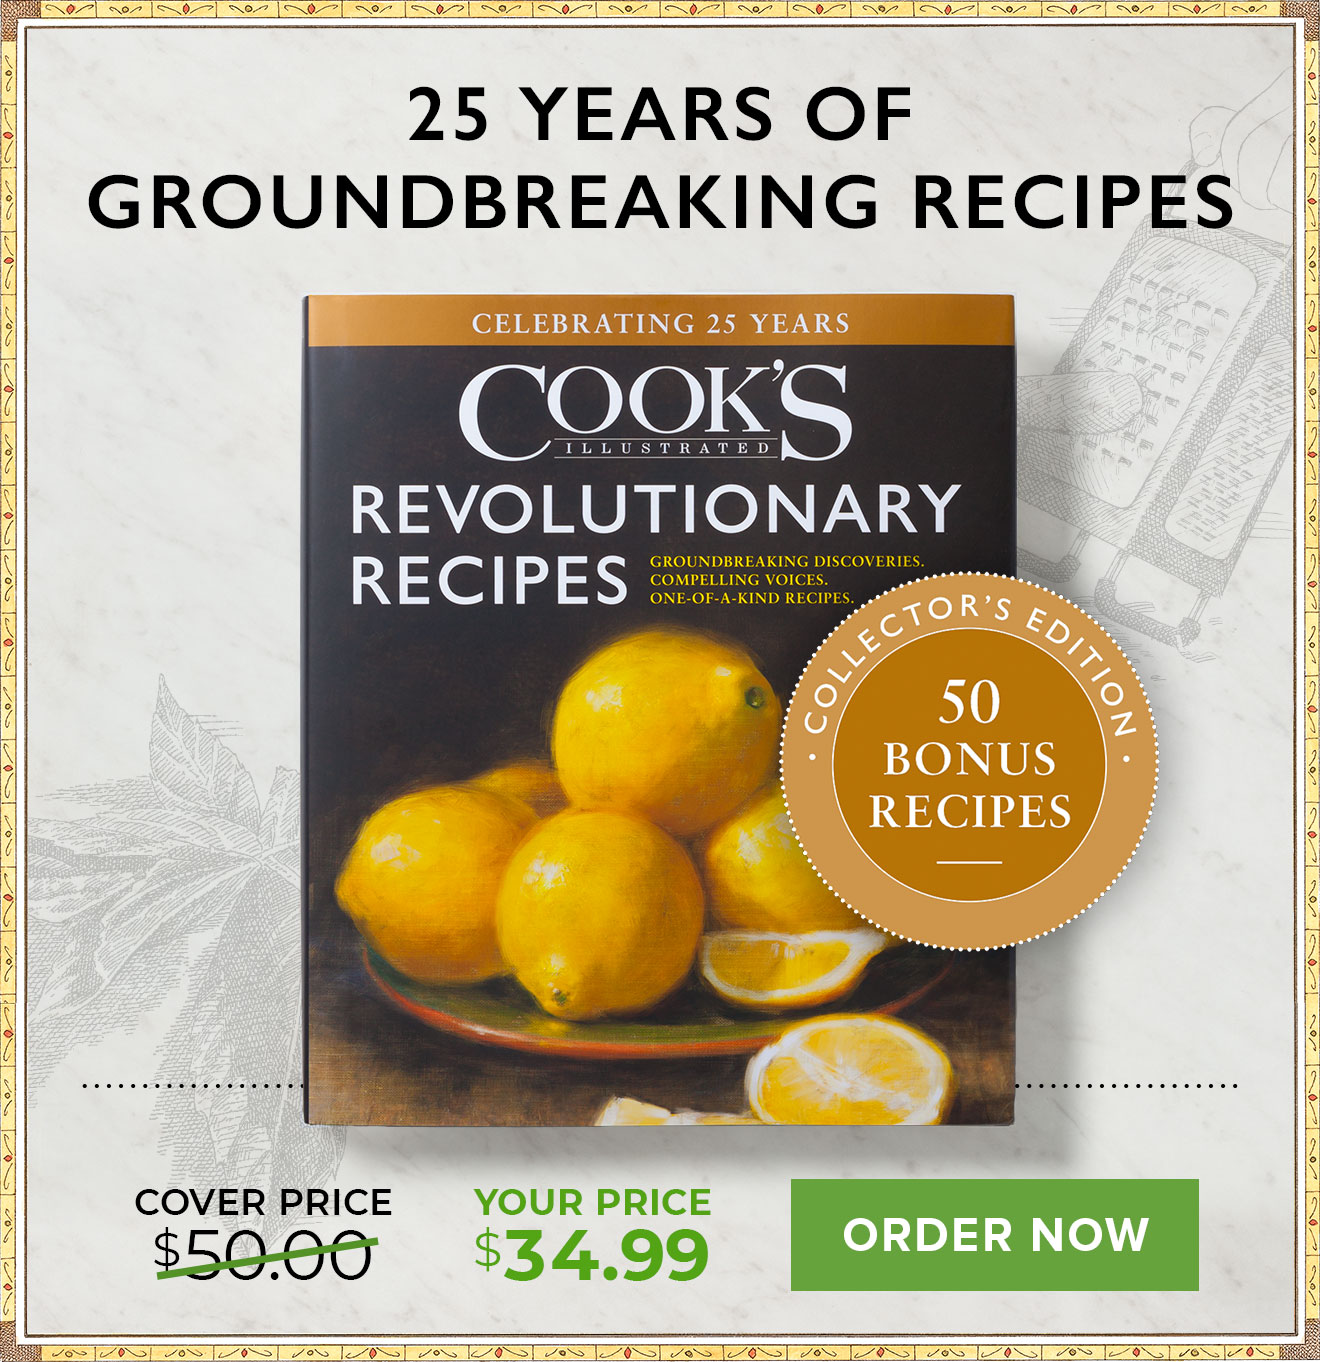 Cook's Illustrated Revolutionary Recipes. 25 years of Groundbreaking Recipes. Exclusive Collector's Edition with 50 Bonus Recipes! Cover Price: $50.00. Your Price: $34.99.